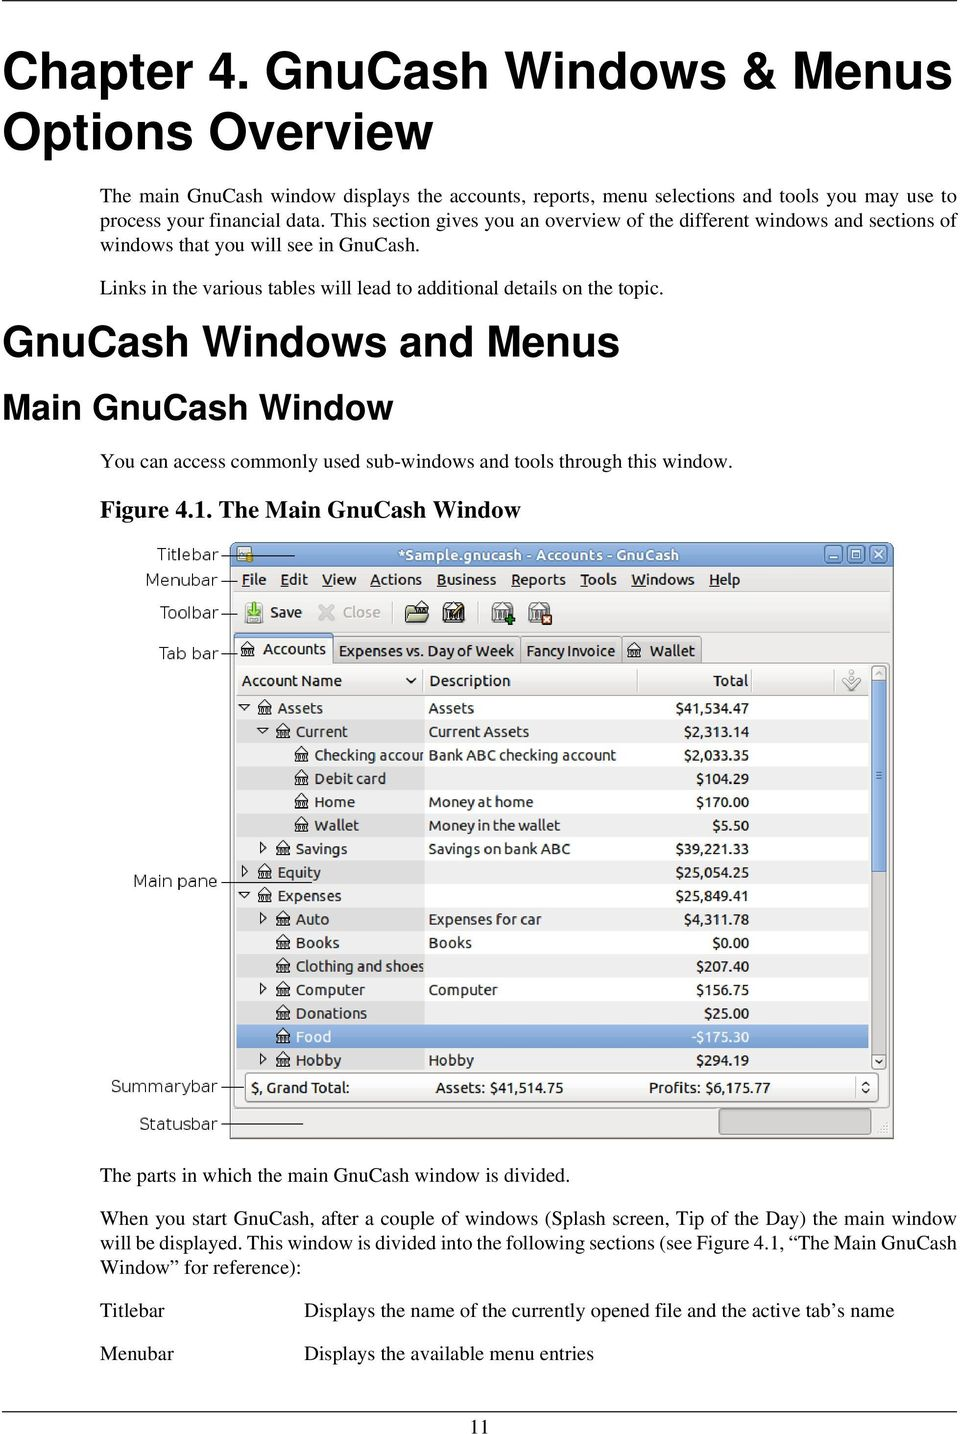 GnuCash Windows and Menus Main GnuCash Window You can access commonly used sub-windows and tools through this window. Figure 4.1.